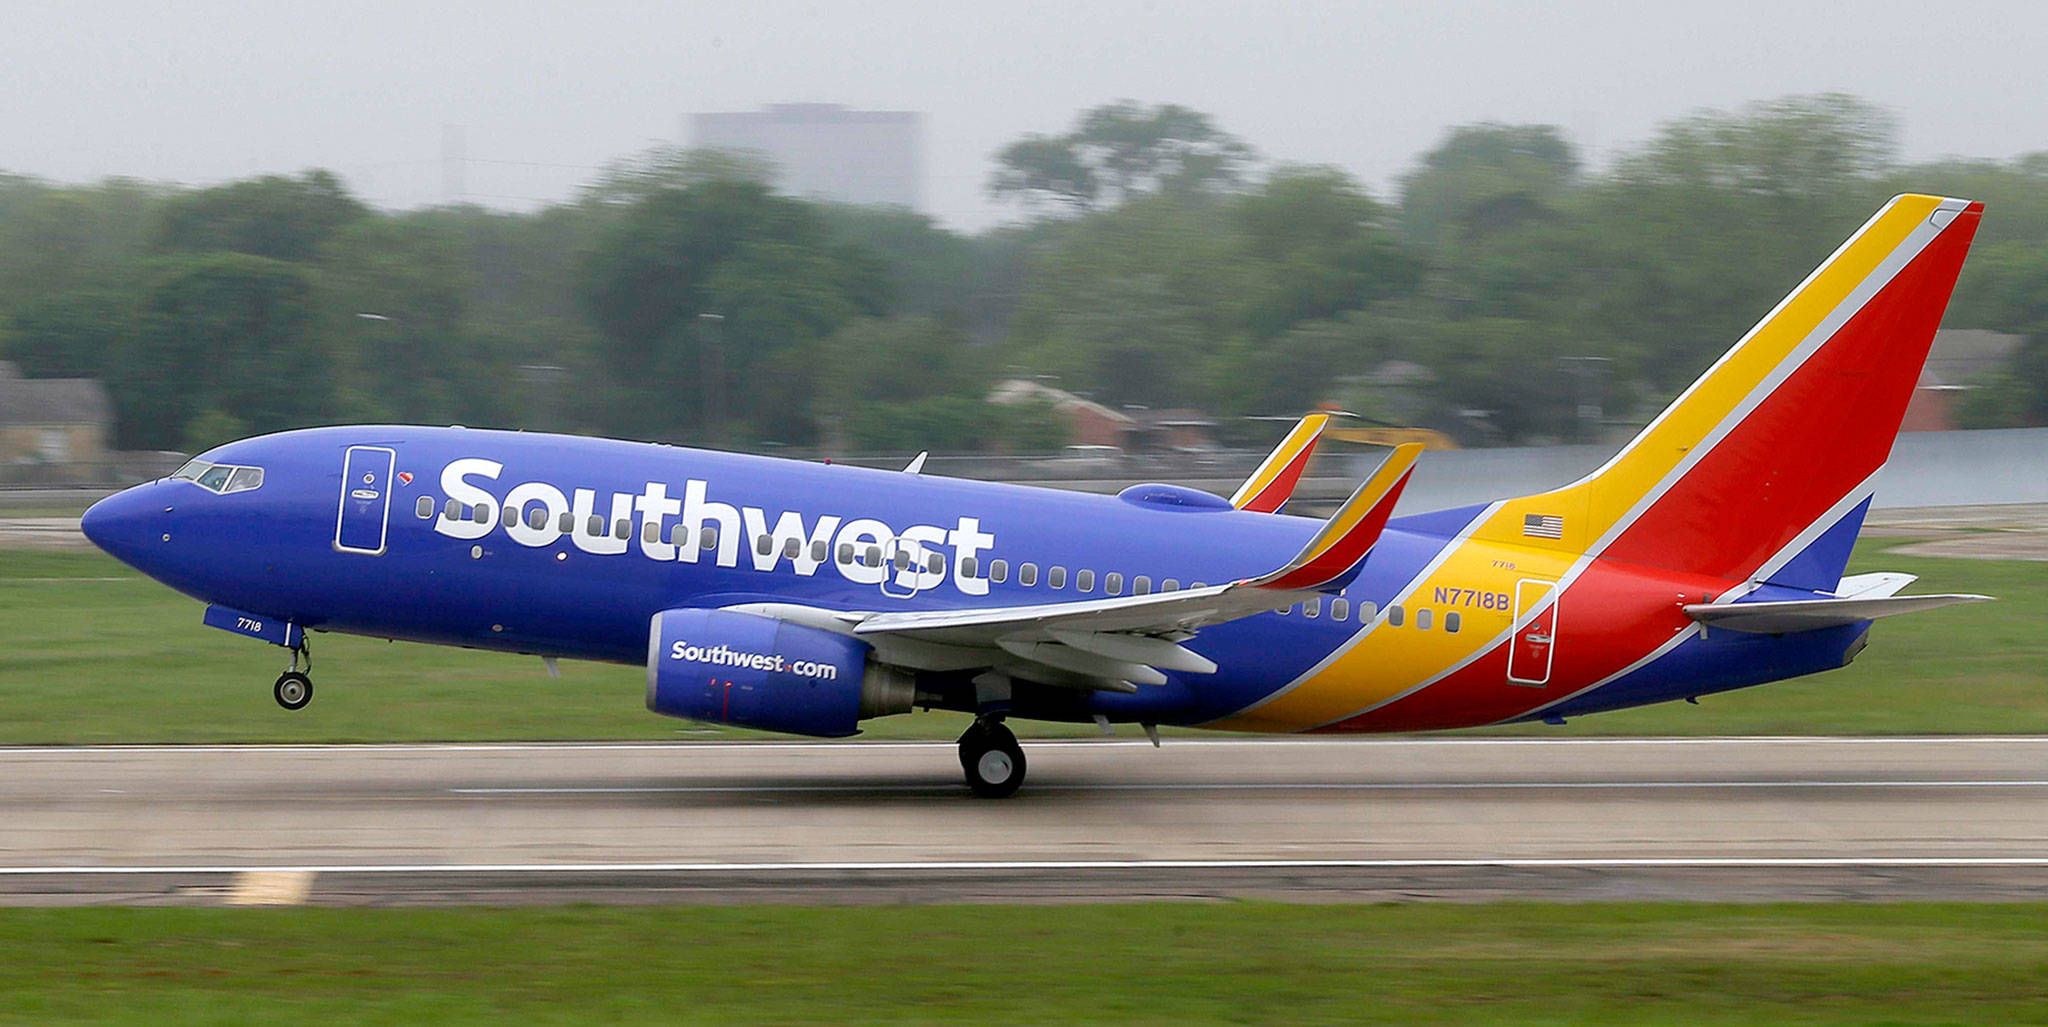 A Southwest Airlines Boeing 737 takes off from a runway at Love Field in Dallas. (AP Photo/LM Otero, File)